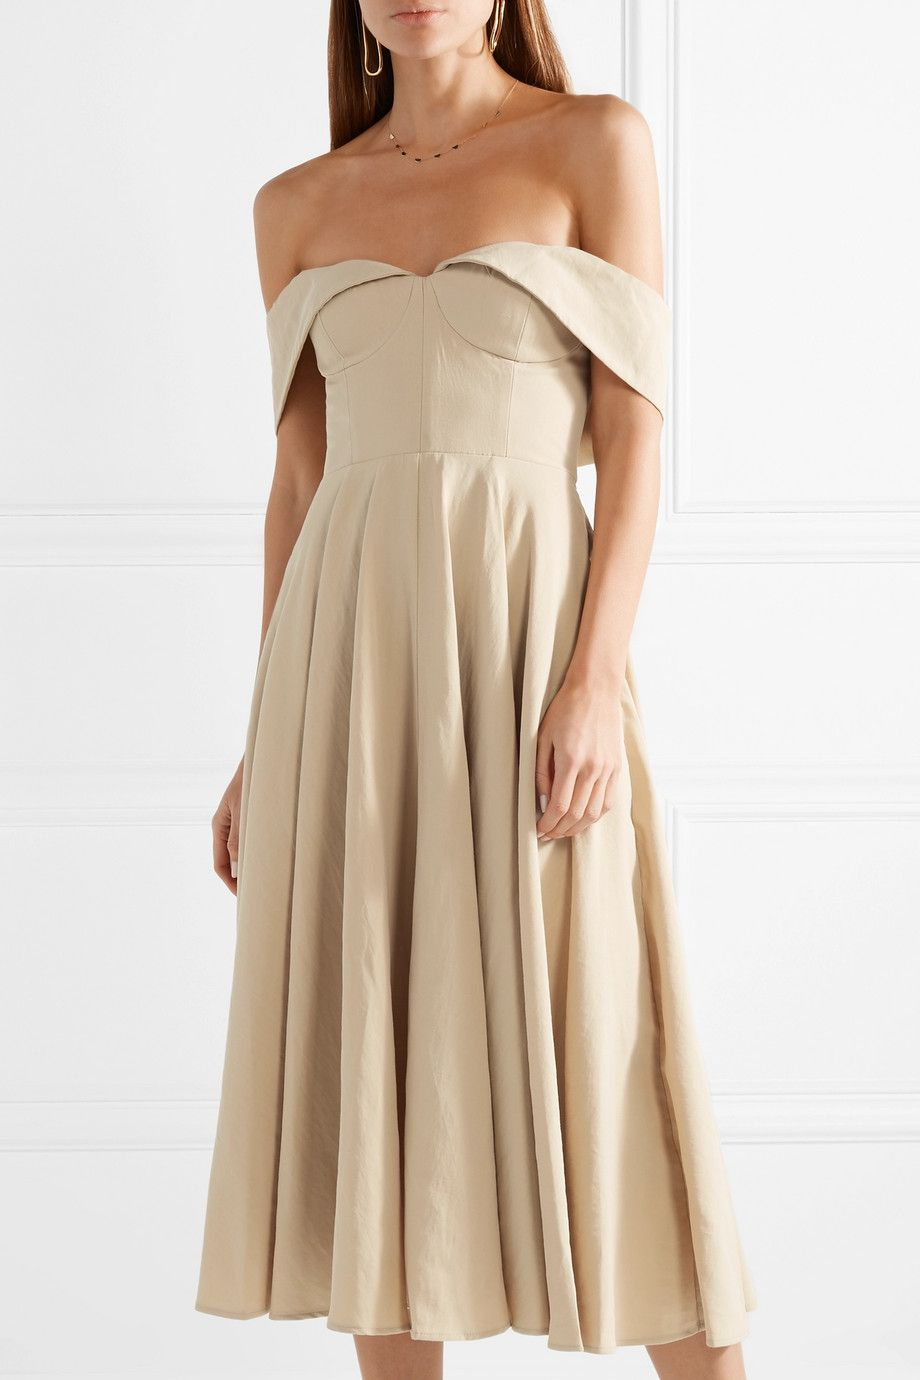 Cool Off-the-shoulder Cotton And Linen-blend Midi Dress - Beige Co Outlet View Purchase Cheap nROGTWDAm